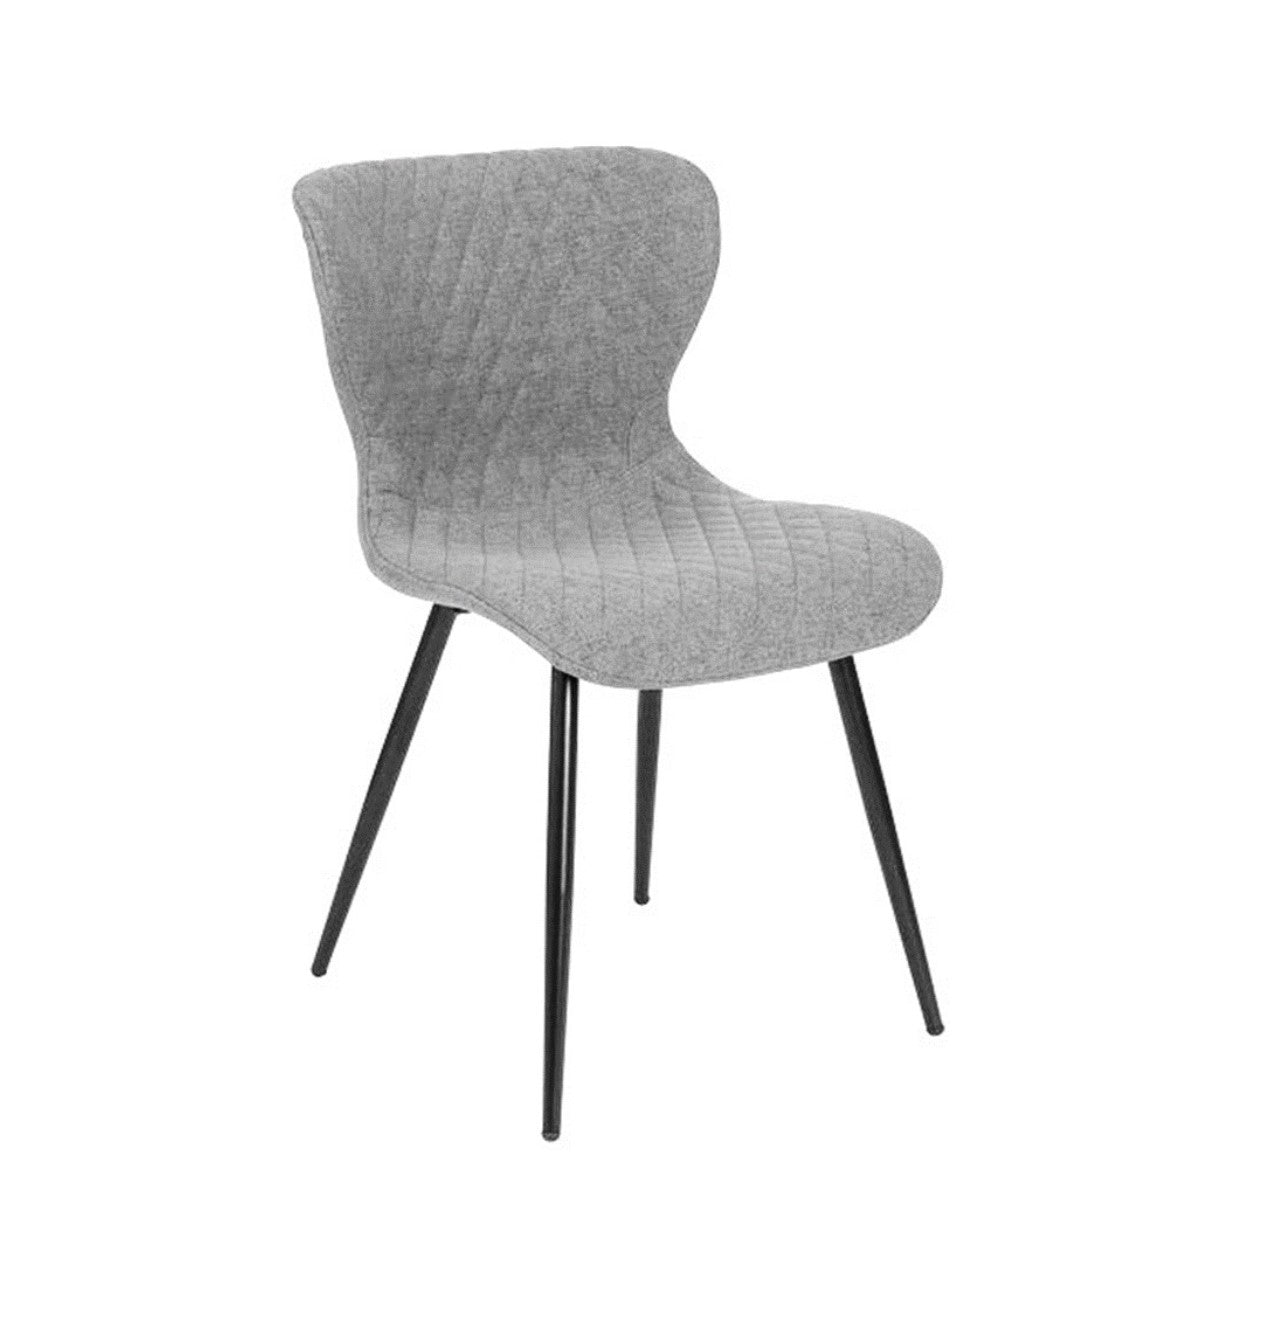 Fabric Dining Chair – 1907A(LG)